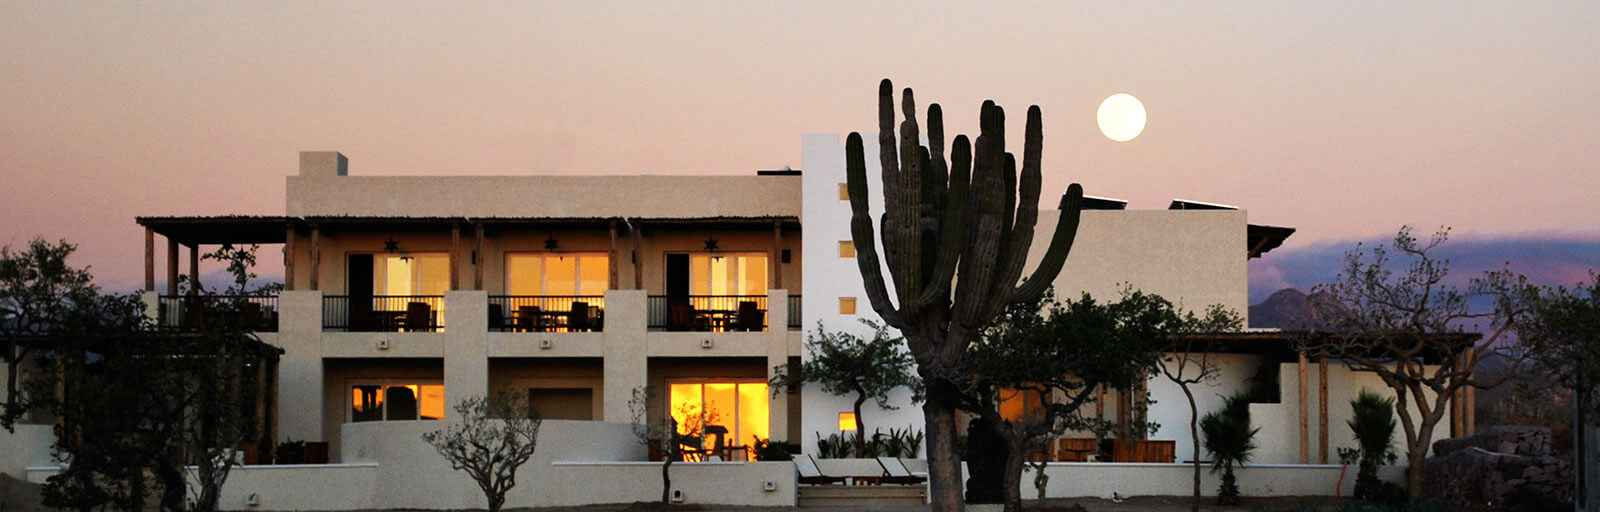 Mexico Yoga Retreats & Wellness Center: Moonrise over Community Buidling